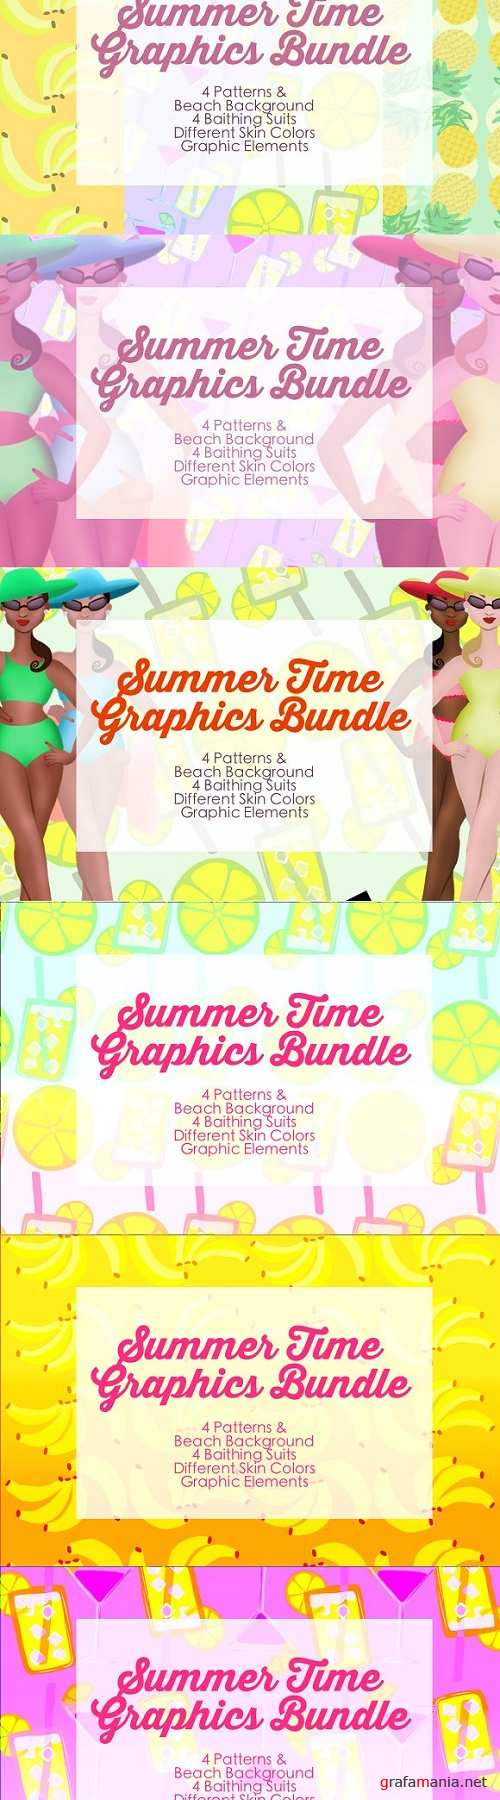 Summer Time Graphic Bundle 1382129